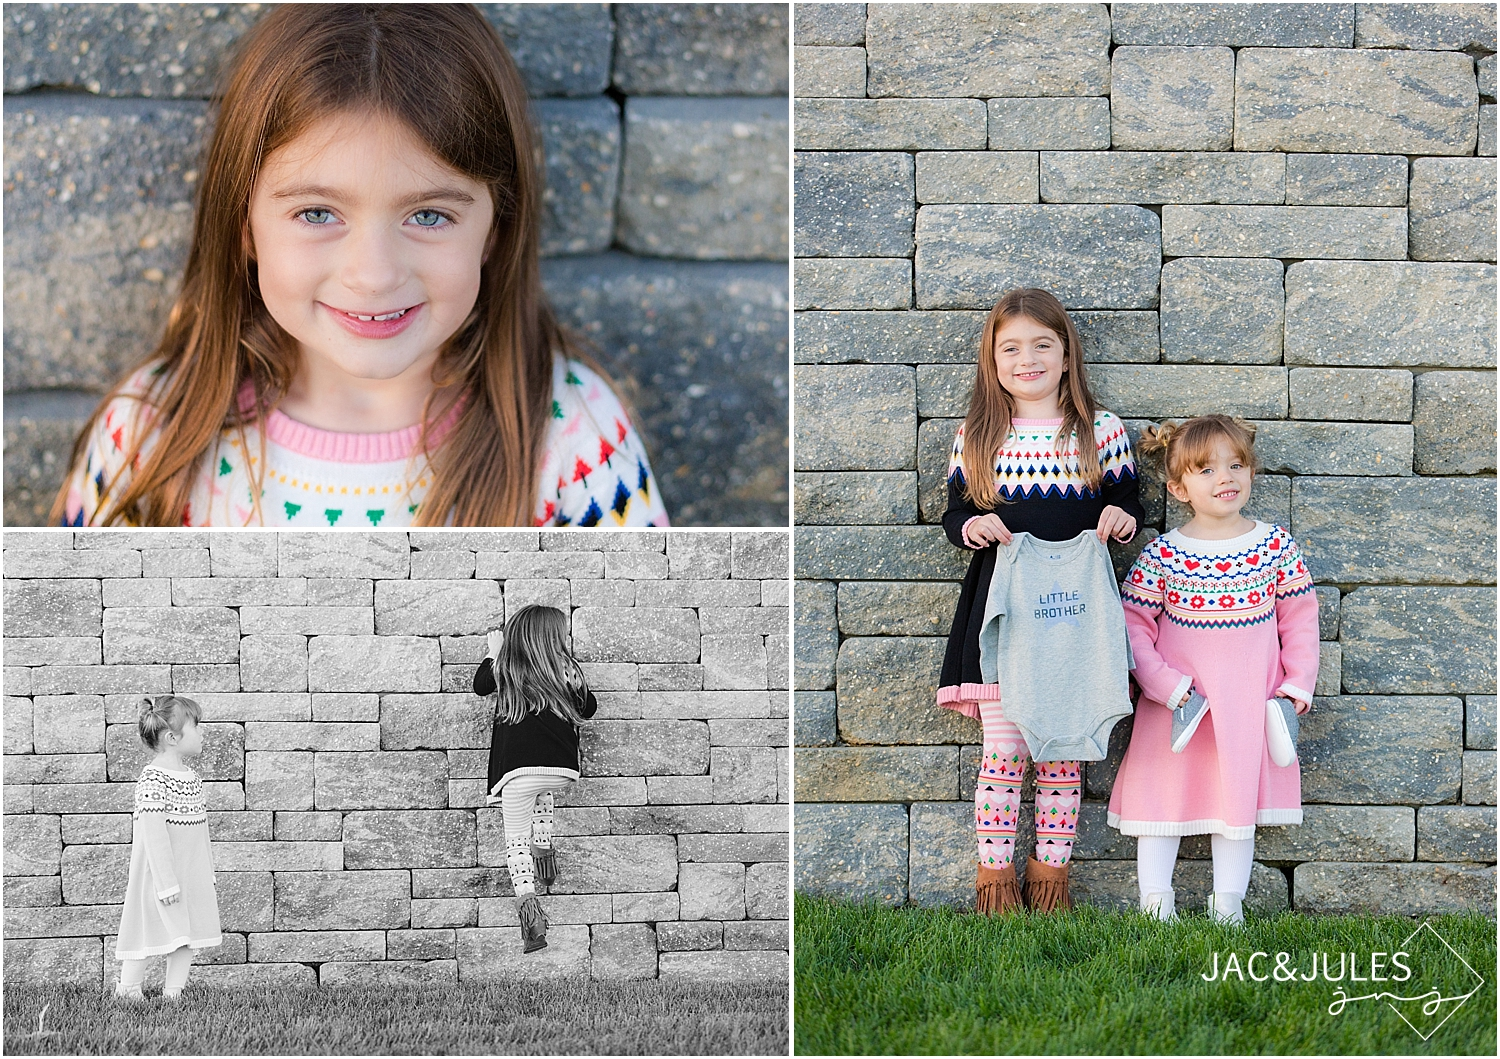 jacnjules photograph children at their home in Toms River, NJ